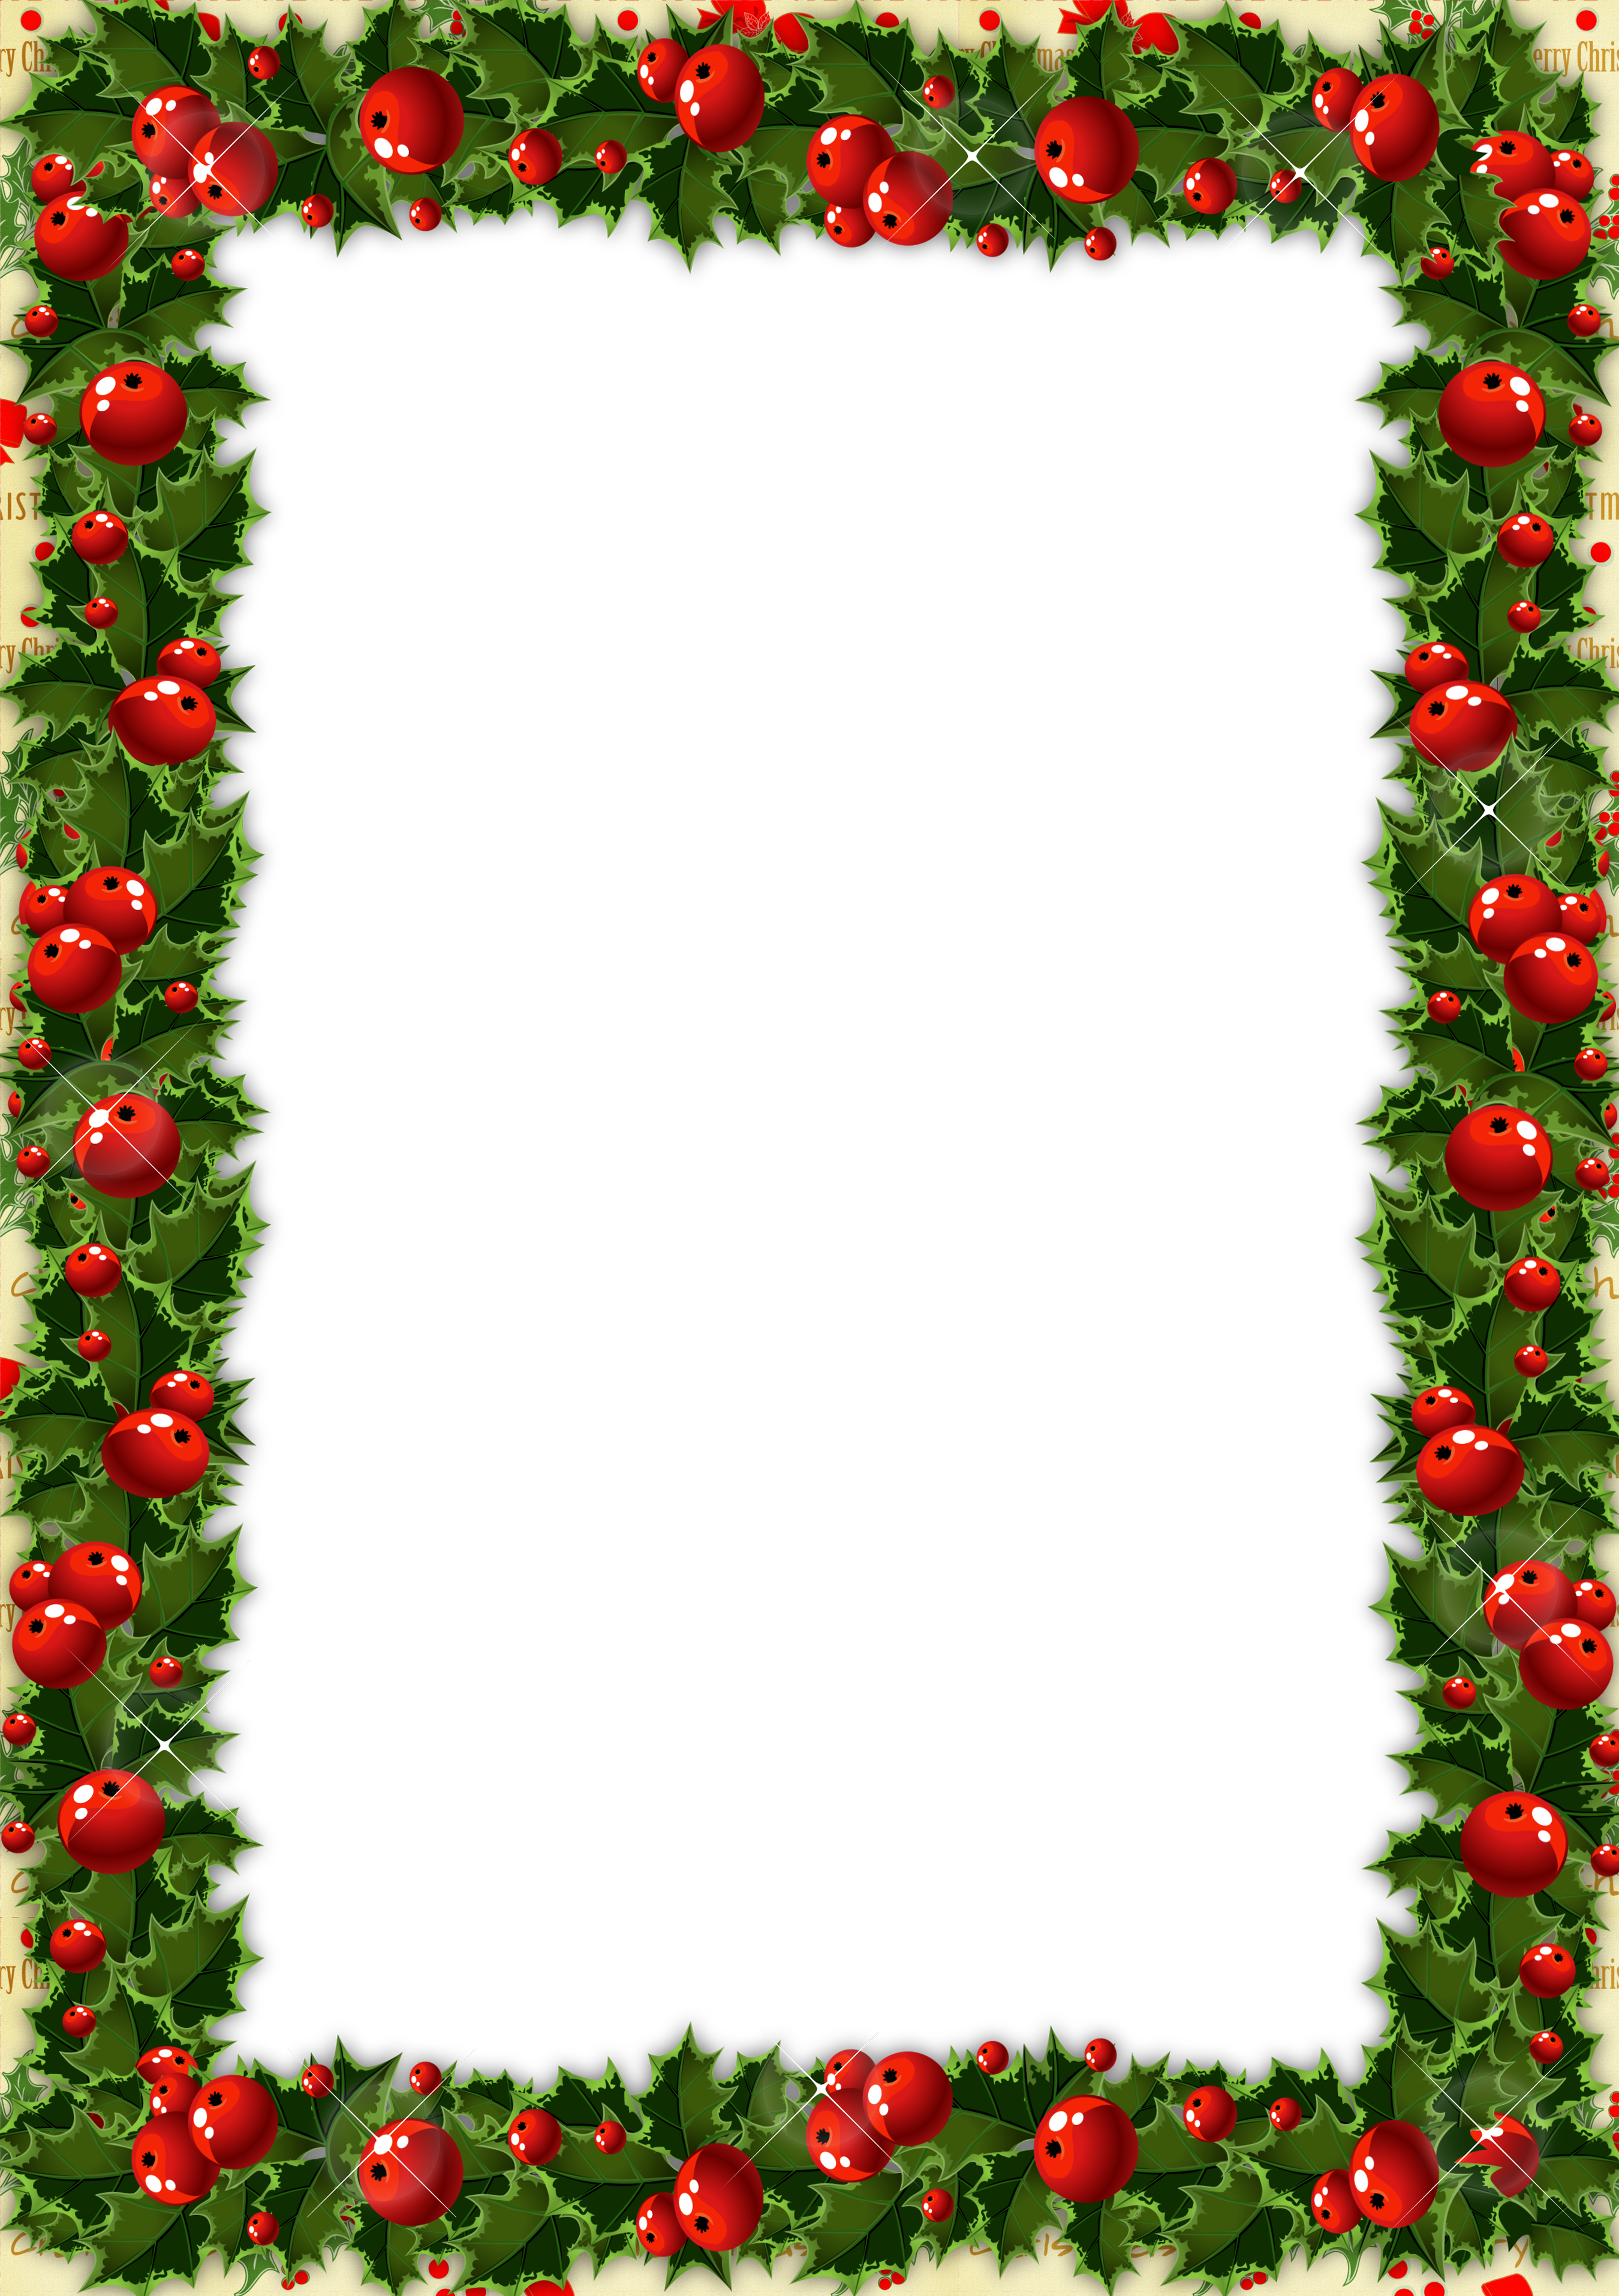 Cute school border clipart image free download Transparent Christmas Photo Frame with Mistletoe | Gallery ... image free download